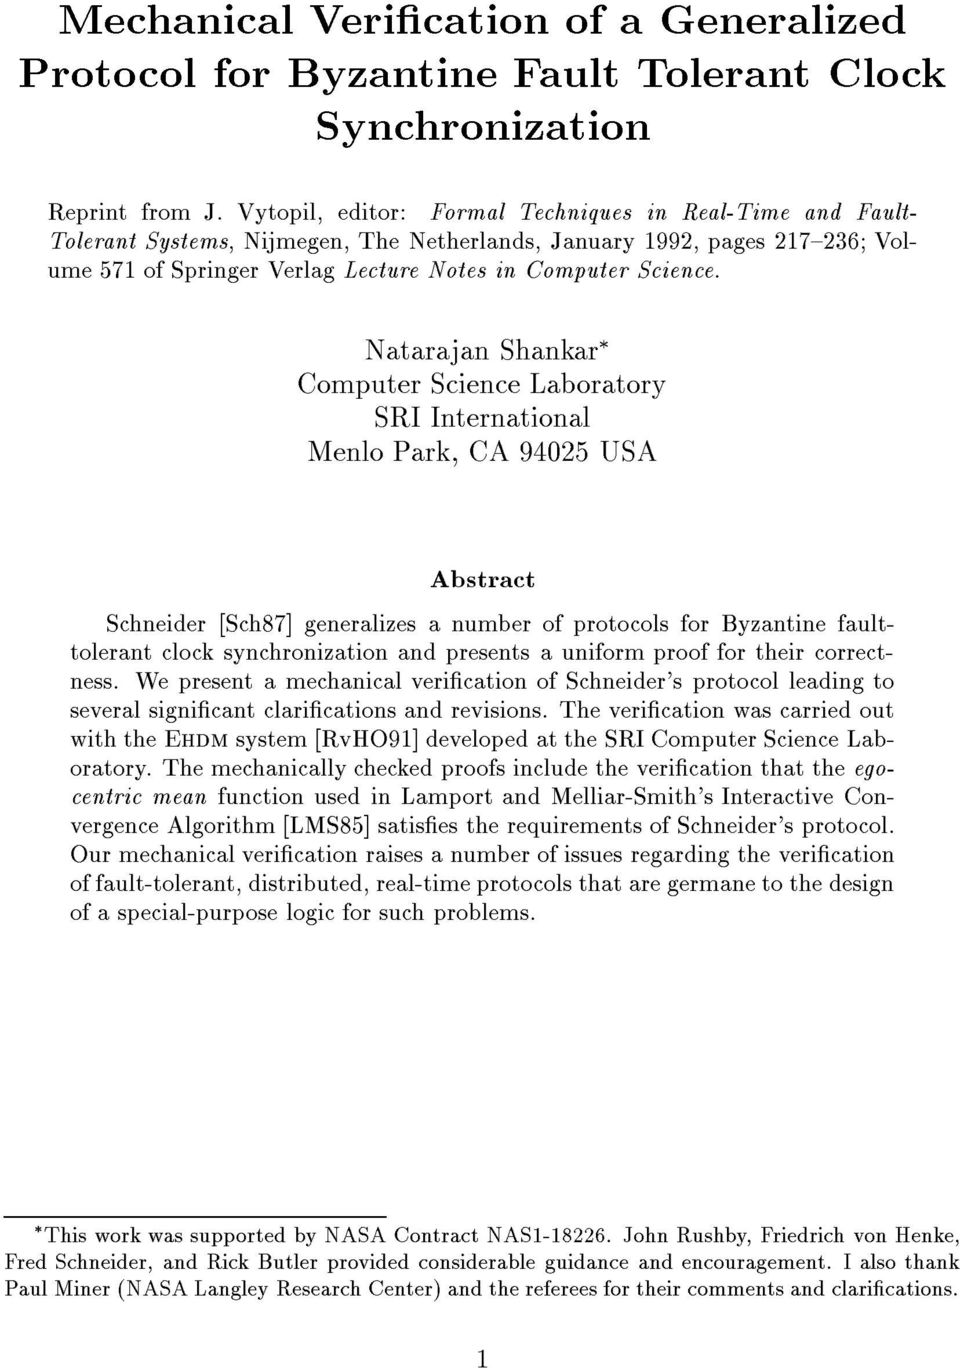 Natarajan Shankar Computer Science Laboratory SRI International Menlo Park, CA 94025 USA Abstract Schneider [Sch87] generalizes a number of protocols for Byzantine faulttolerant clock synchronization